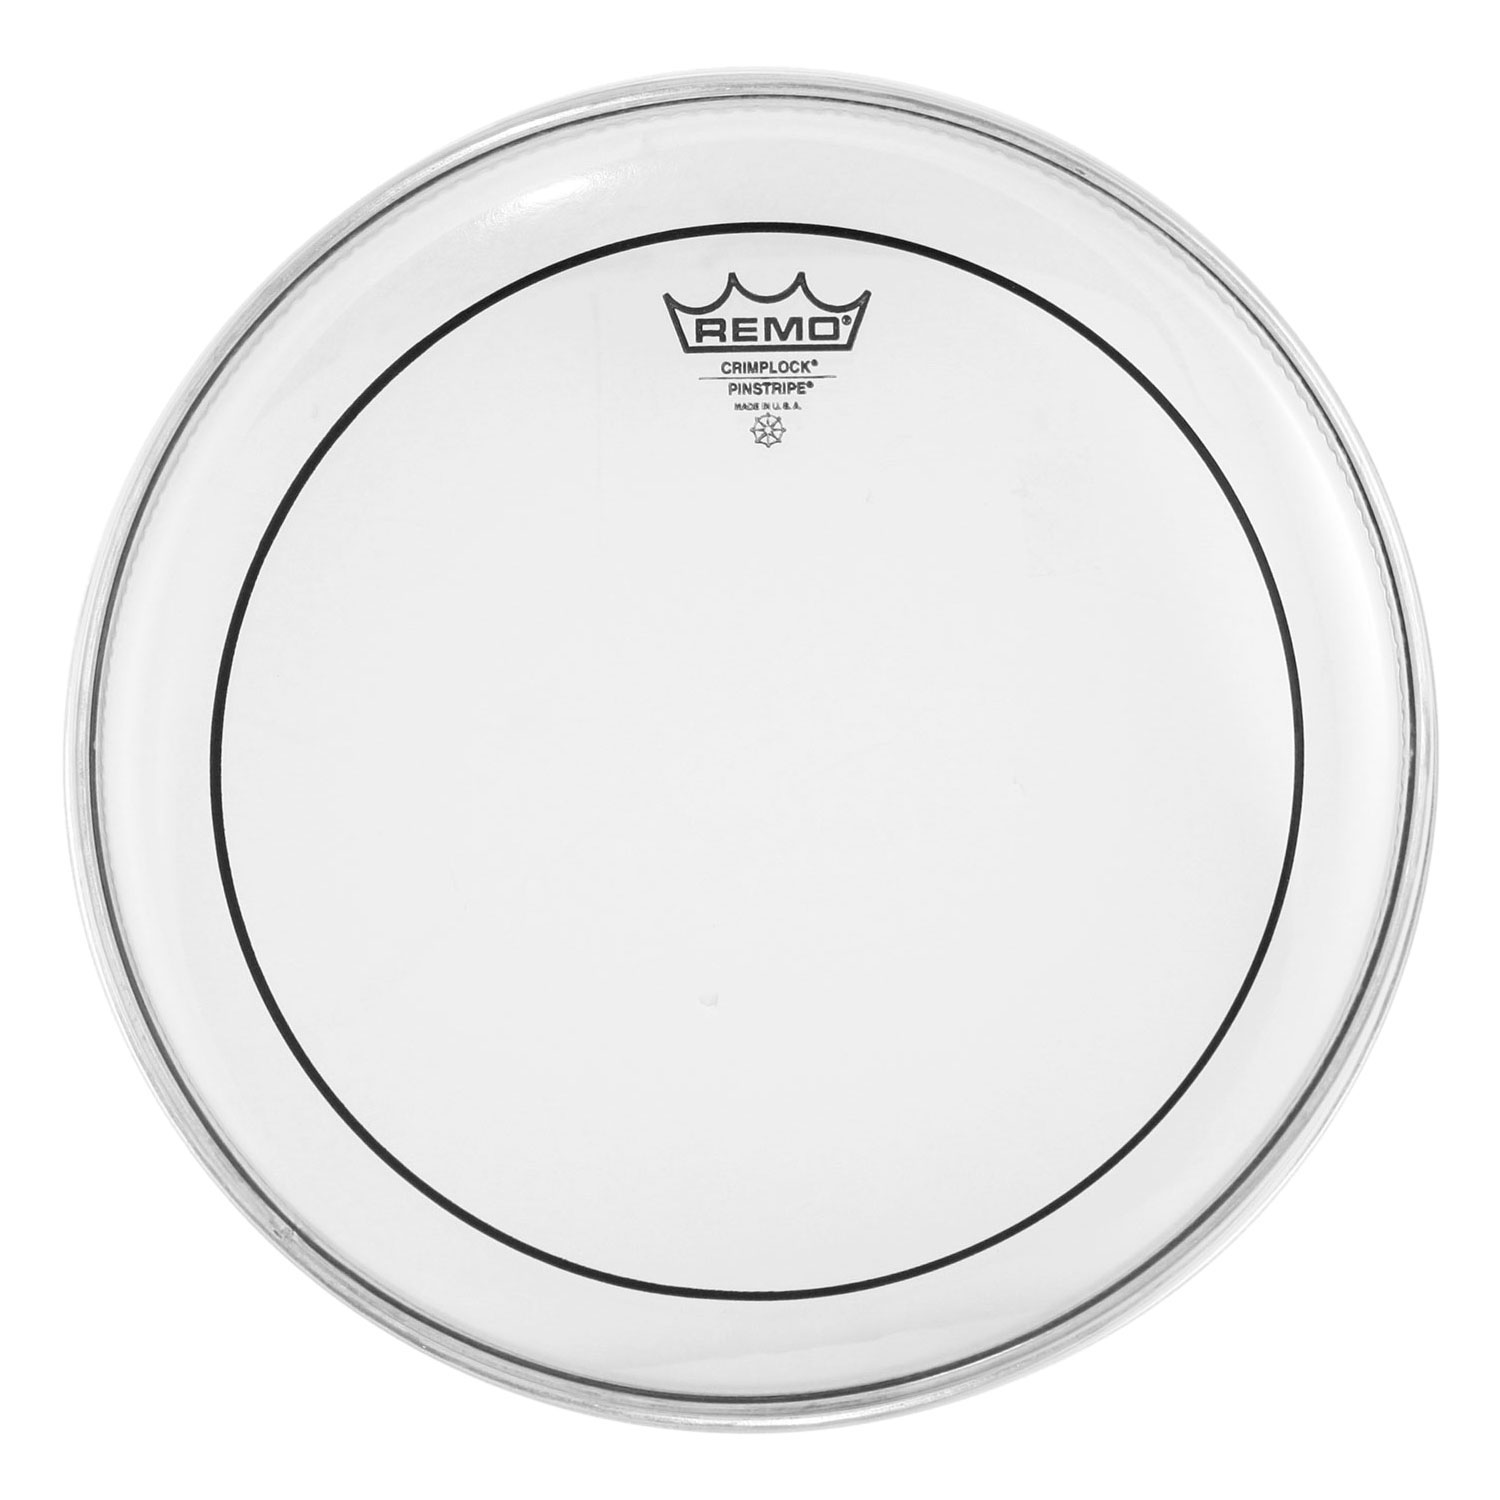 "Remo 12"" Pinstripe Clear Crimplock Marching Tenor Drum Head"